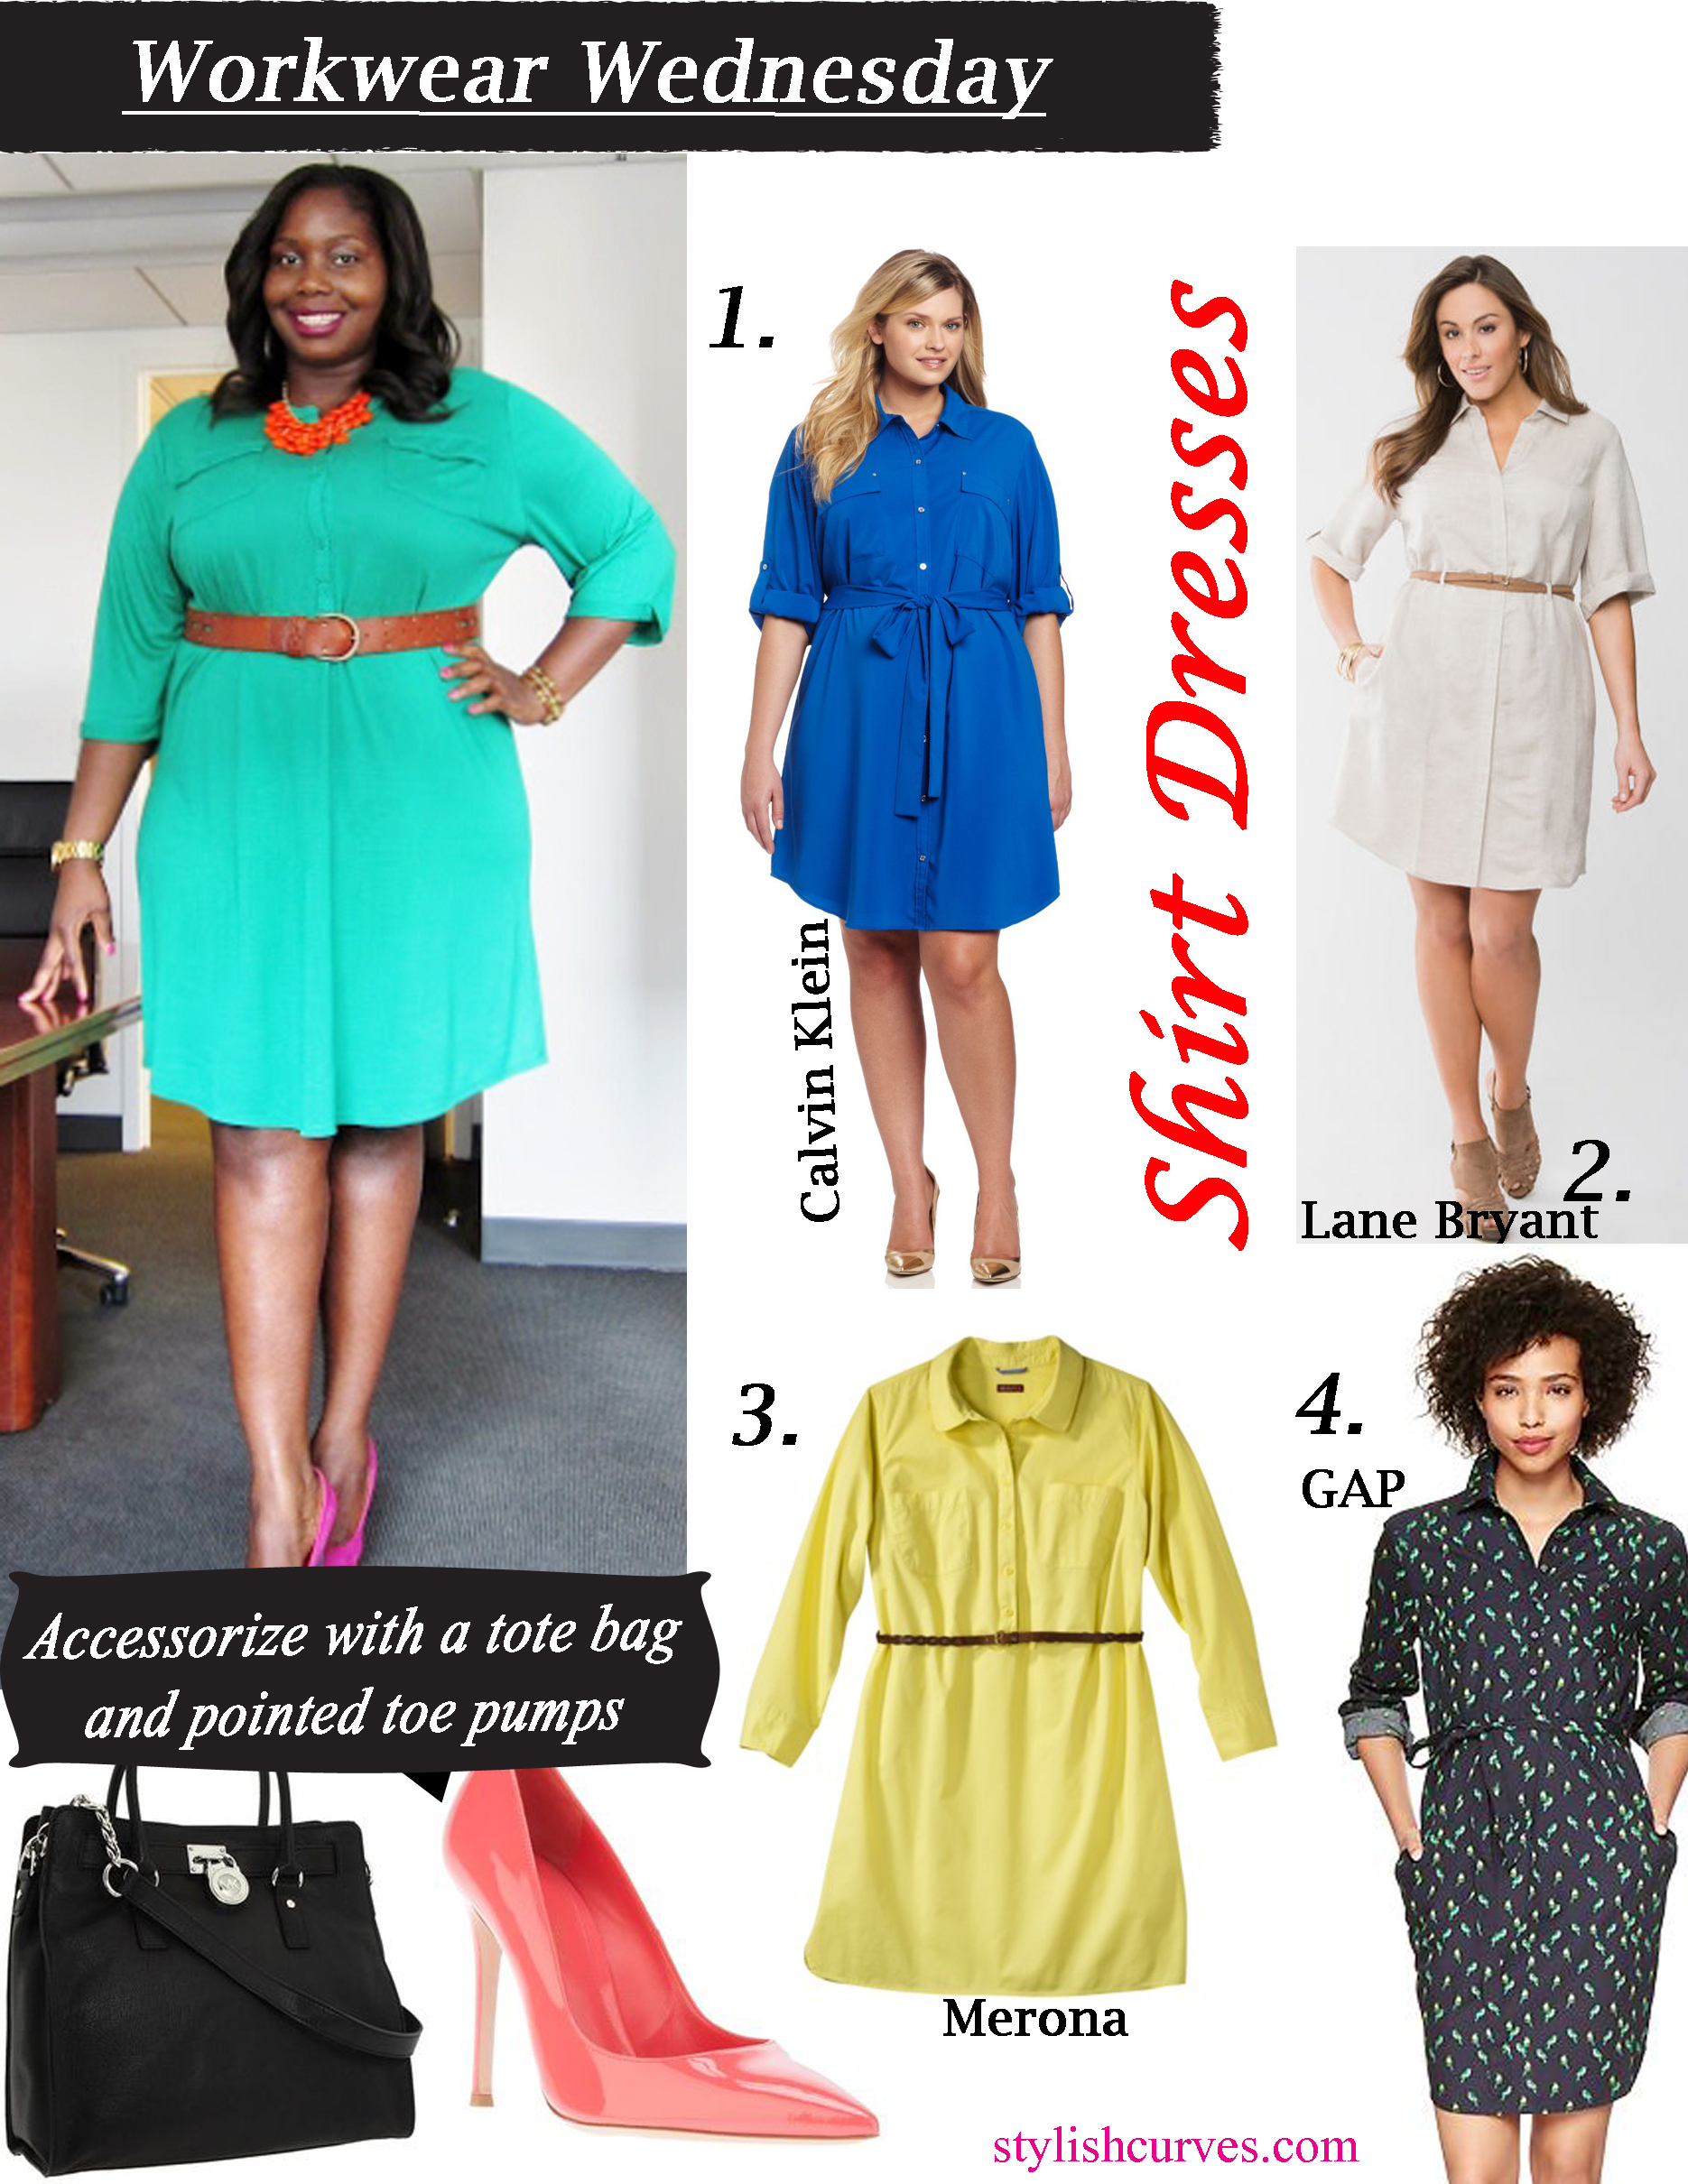 WORK-WEAR WEDNESDAY: PLUS SIZE SHIRT DRESSES | Stylish Curves